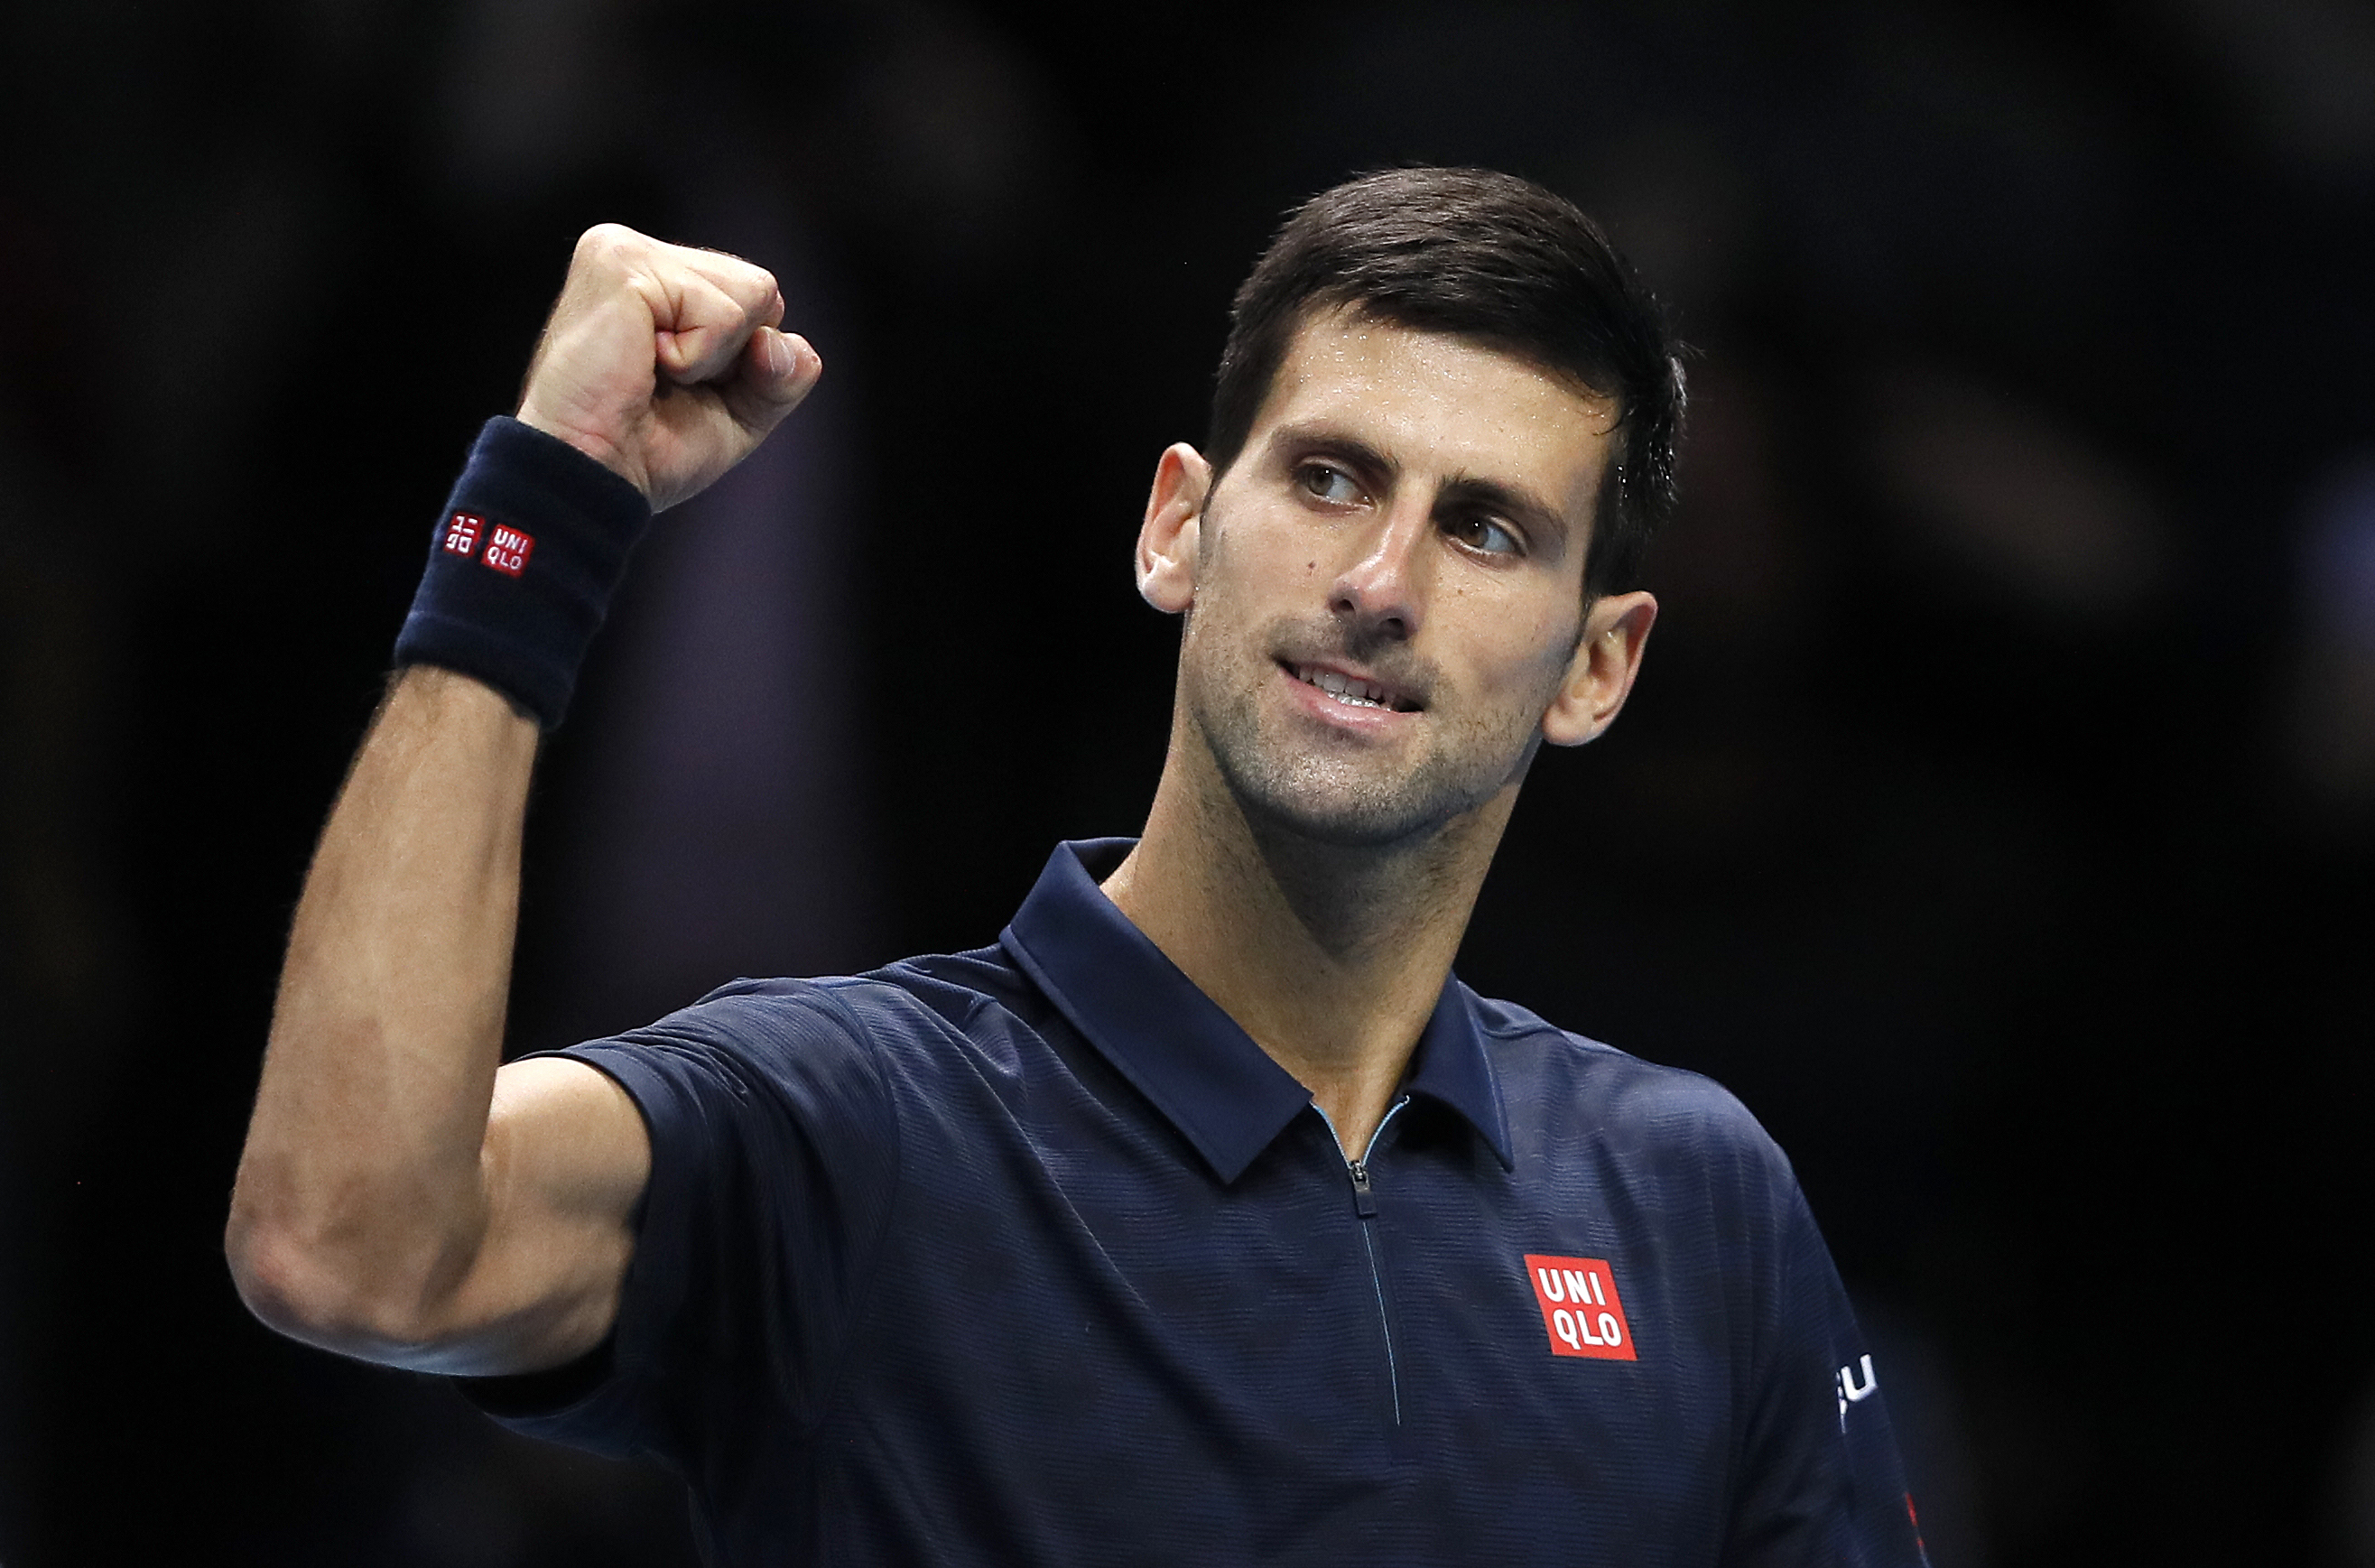 Novak Djokovic of Serbia celebrates winning match point against David Goffin of Belgium during their ATP World Tour Finals singles tennis match at the O2 Arena in London, Thursday, Nov. 17, 2016. (AP Photo/Kirsty Wigglesworth)